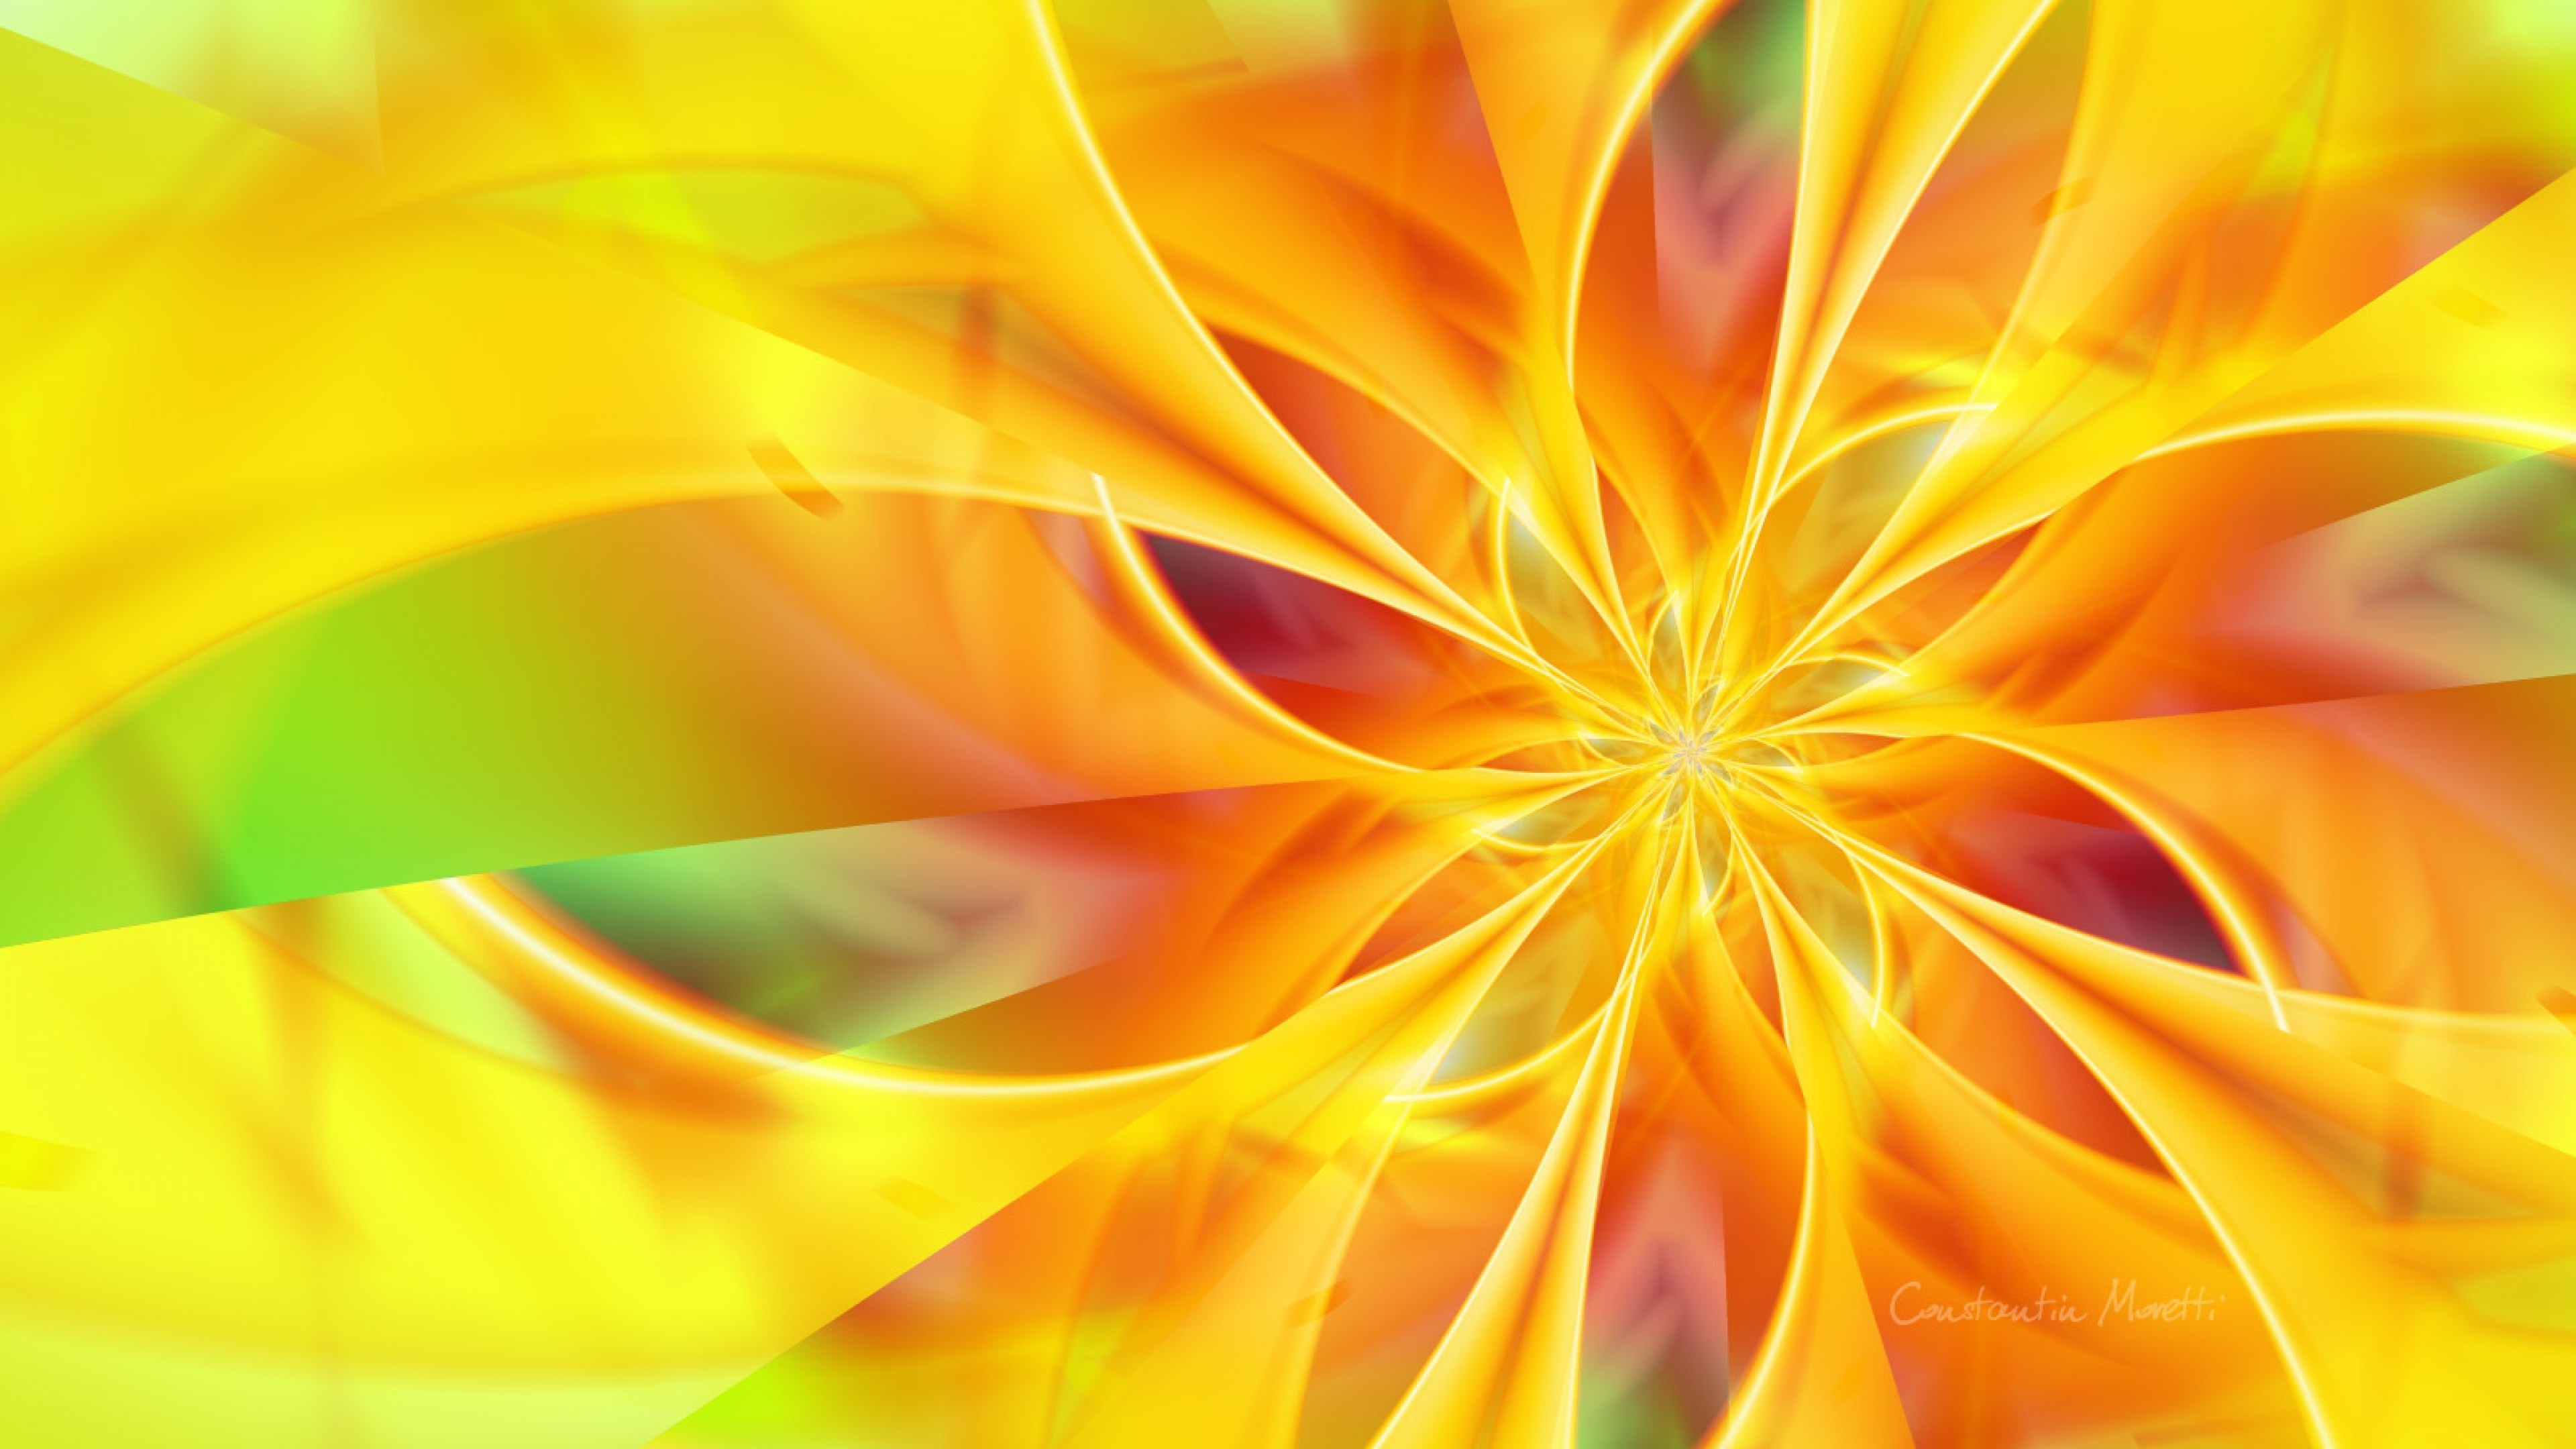 3840x2160 Download Colorful Yellow Flower Background